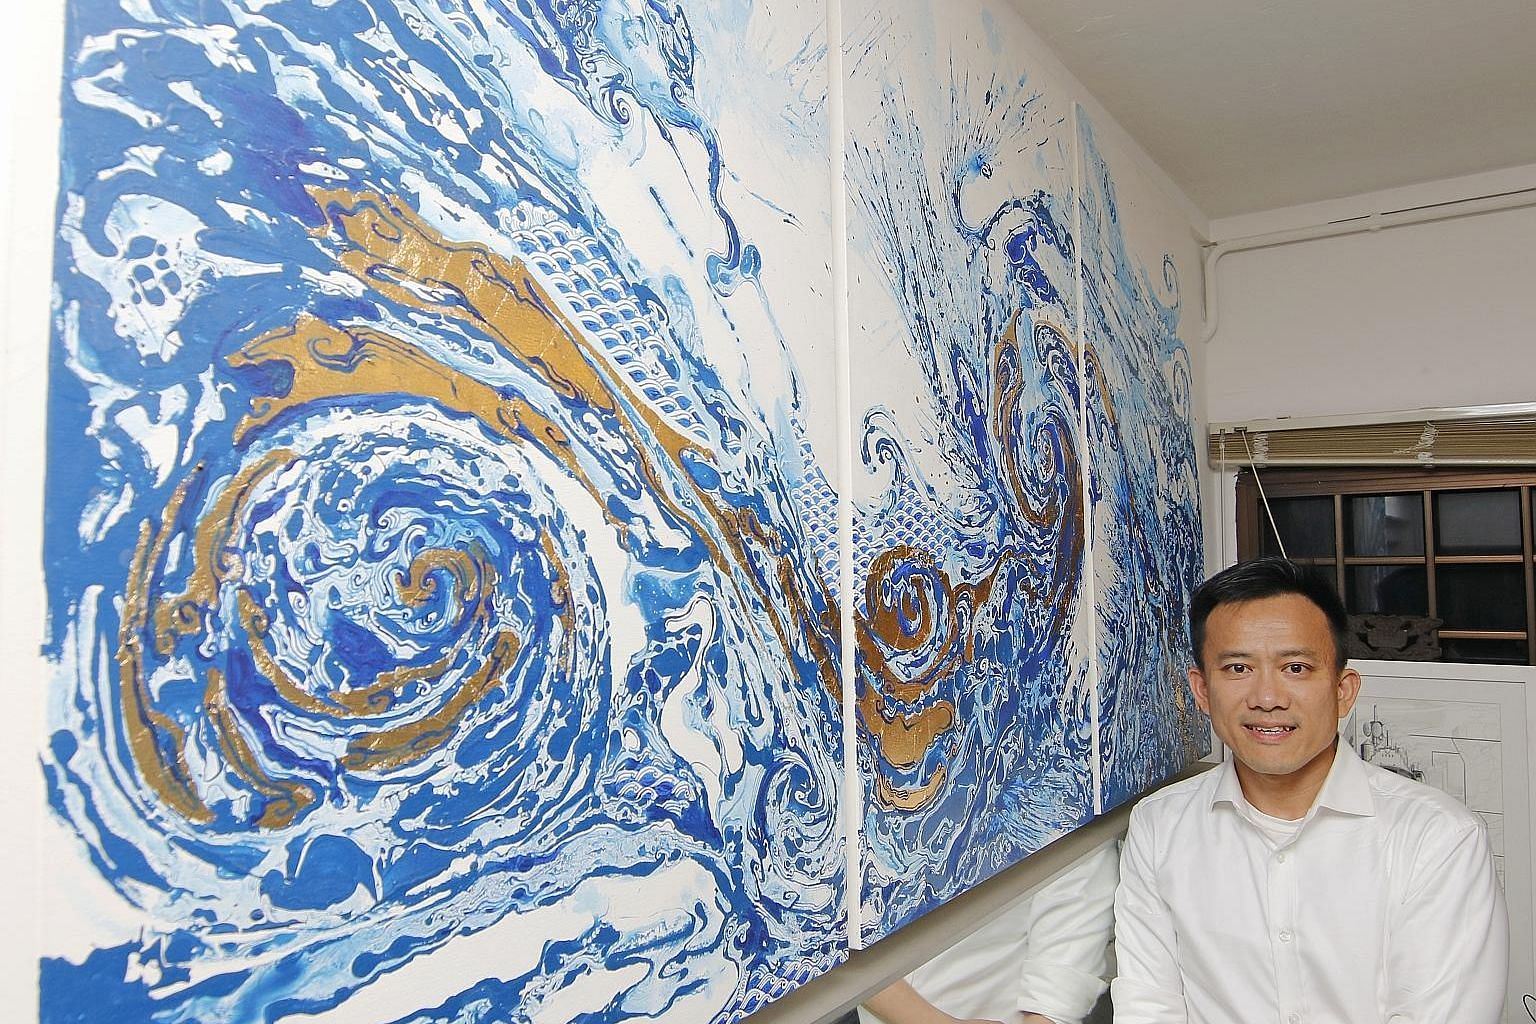 A painting by Thai artist Pannaphan Yodamanee is the most expensive artwork in property agent Nick Lim's collection.